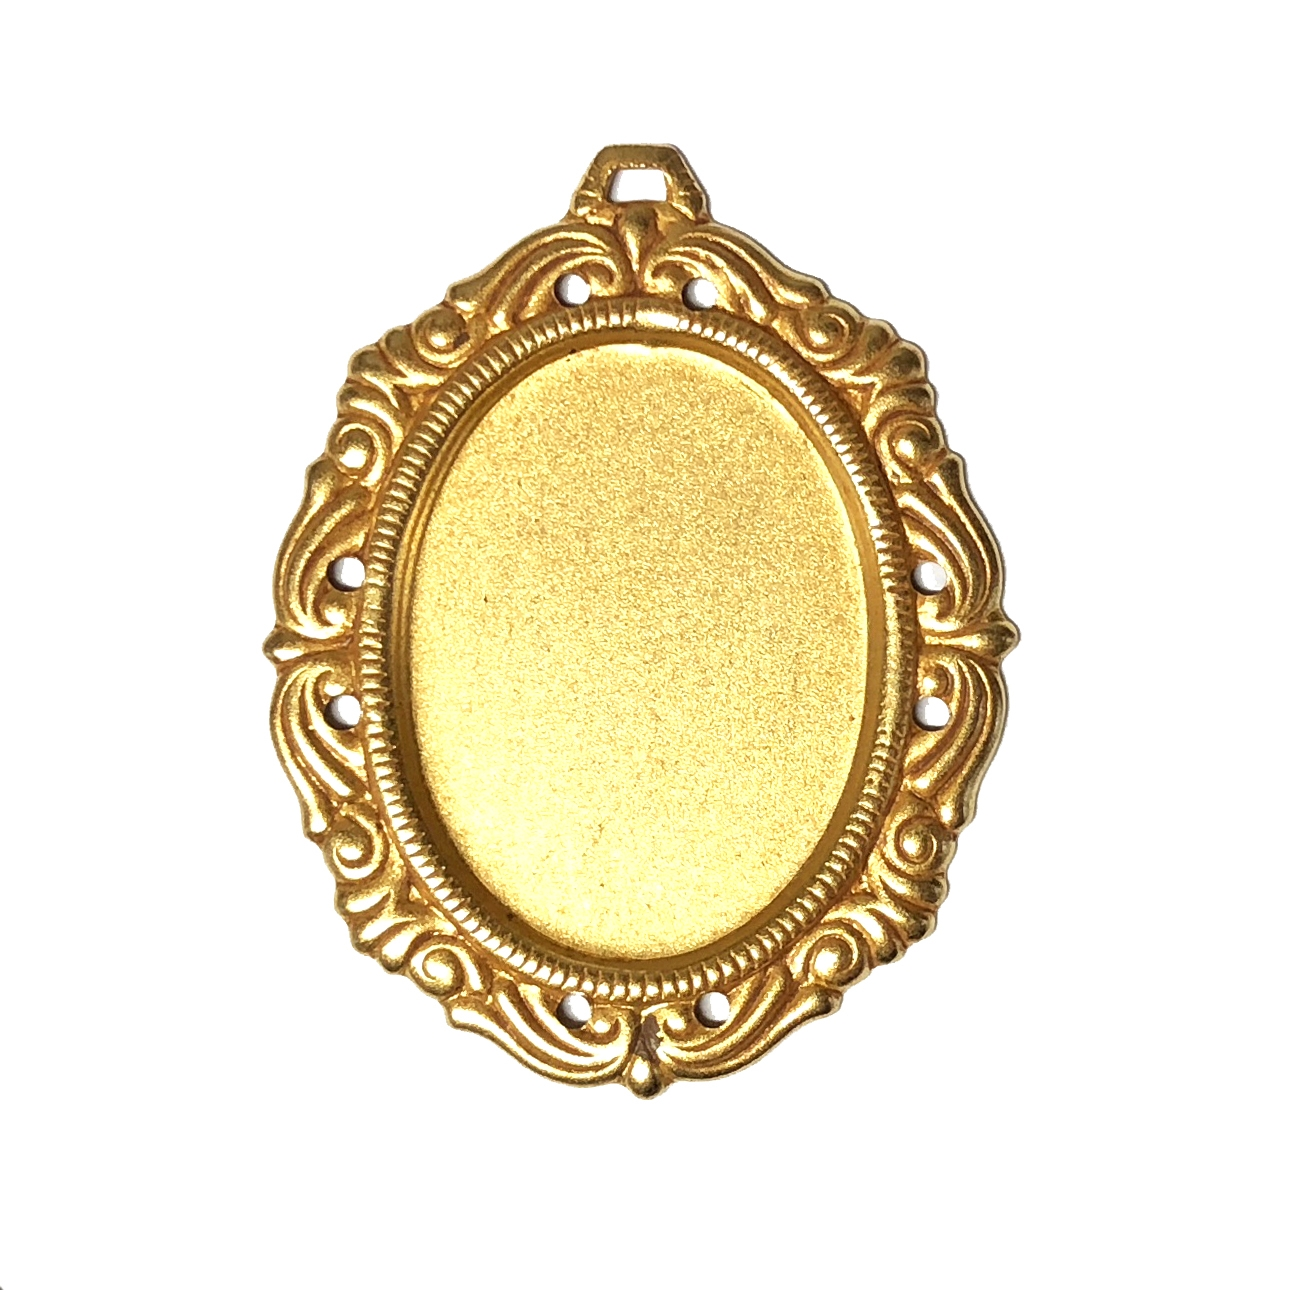 Victorian mount, classic gold, brass, mount, brass stamping, pendent, 25x18mm, hanging hole, 38x30mm, brass mount, mount jewelry, us made, nickel free, b'sue boutiques, victorian, jewelry making, vintage supplies, jewelry supplies, 05014